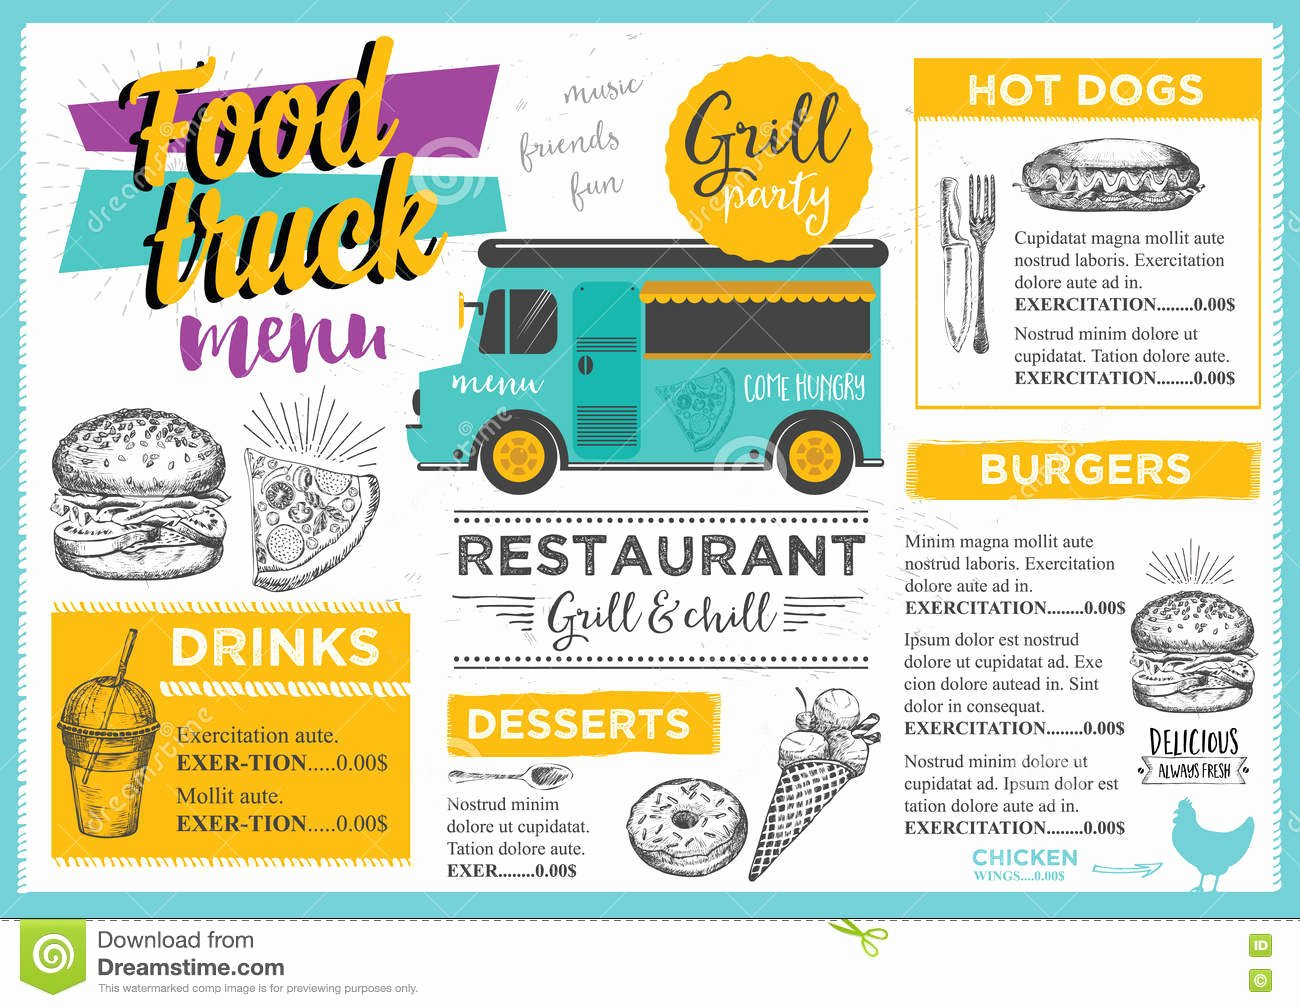 Food Truck Menu Template Awesome Food Truck Party Invitation Food Menu Template Design Stock Vector Illustration Of Board